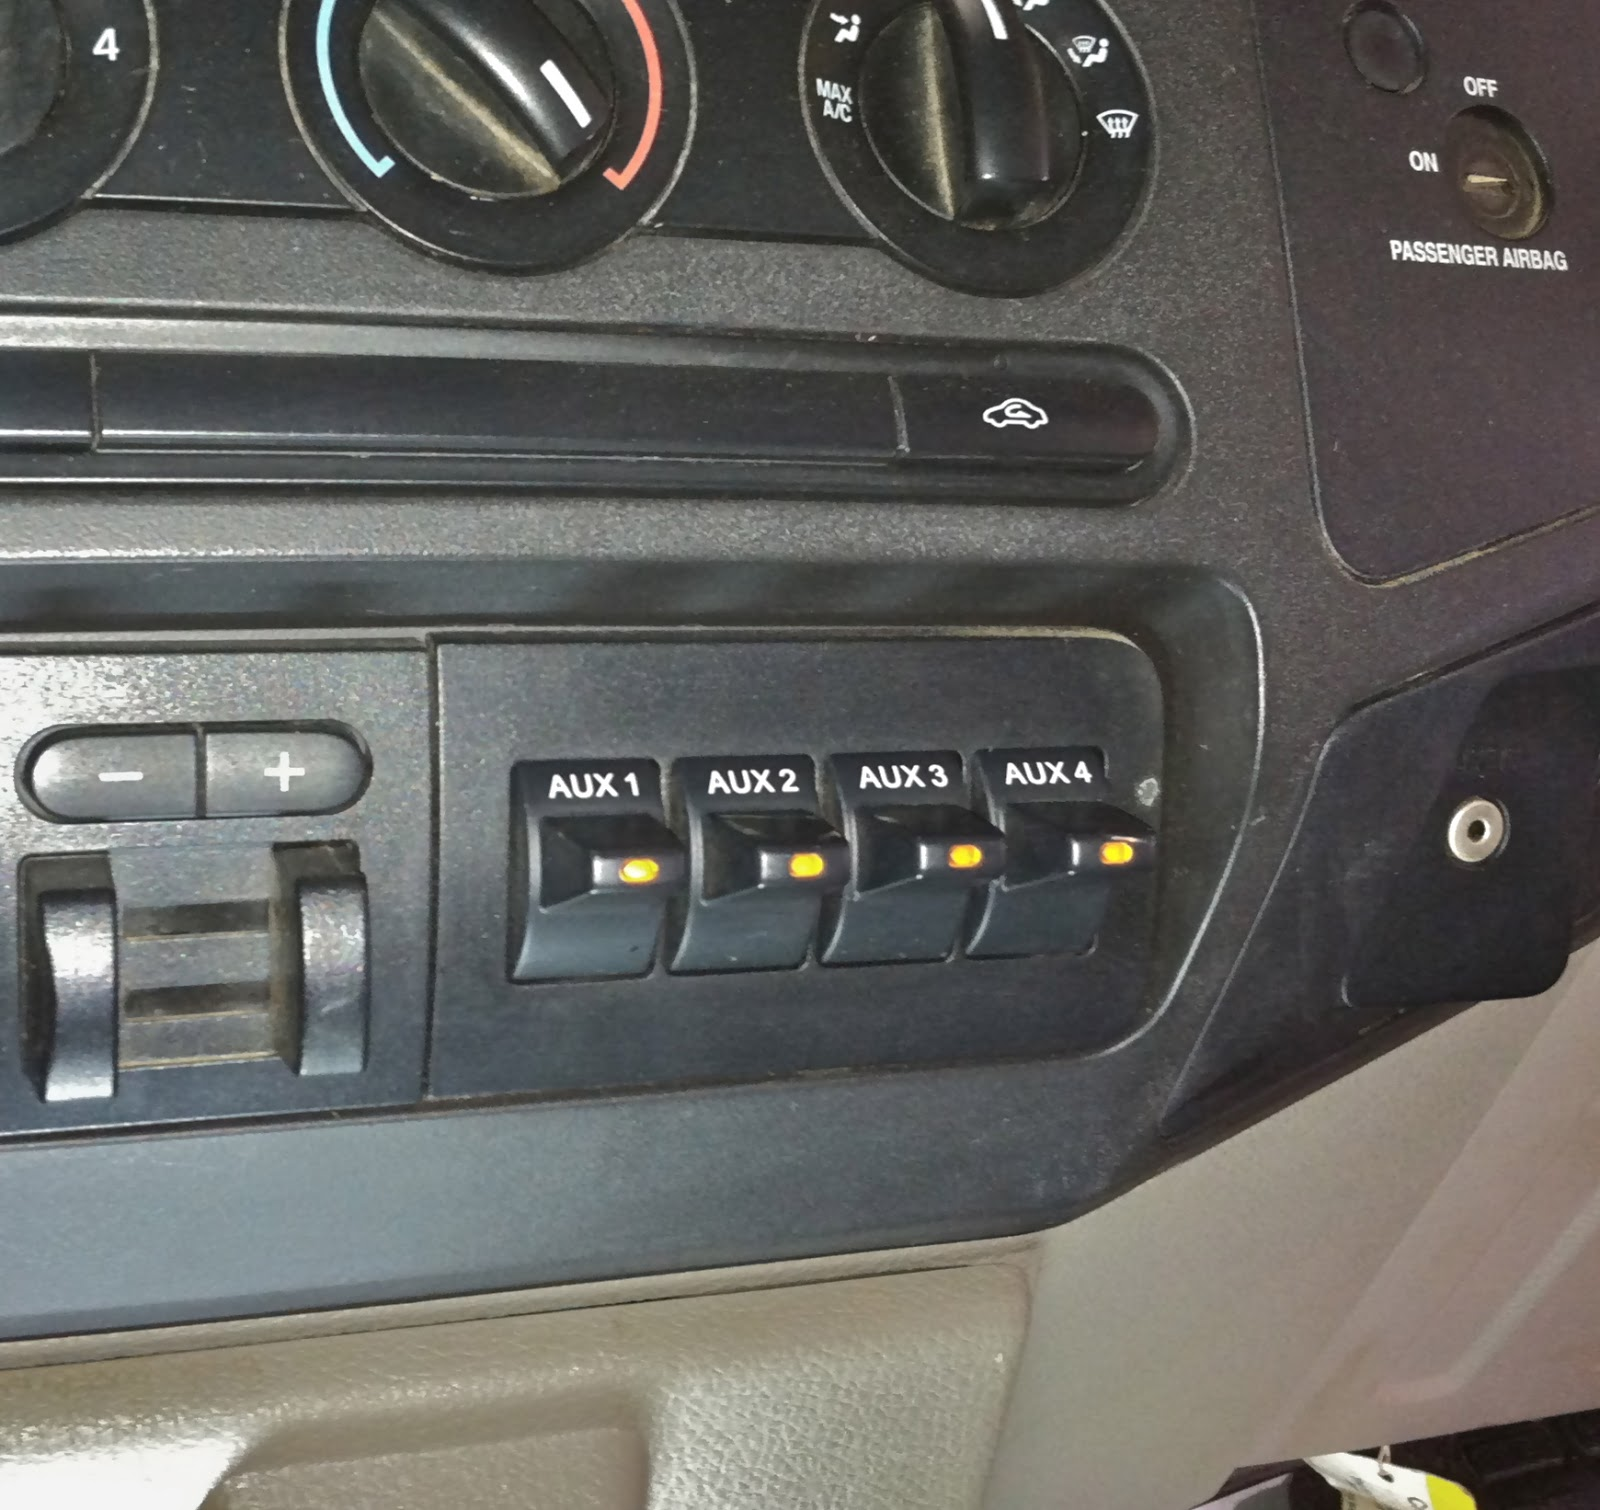 car audio tips tricks and how to s ford f series super duty trucks rh caraudiotips blogspot com Ford F-250 023 Custom 88 Ford F-250 XLT